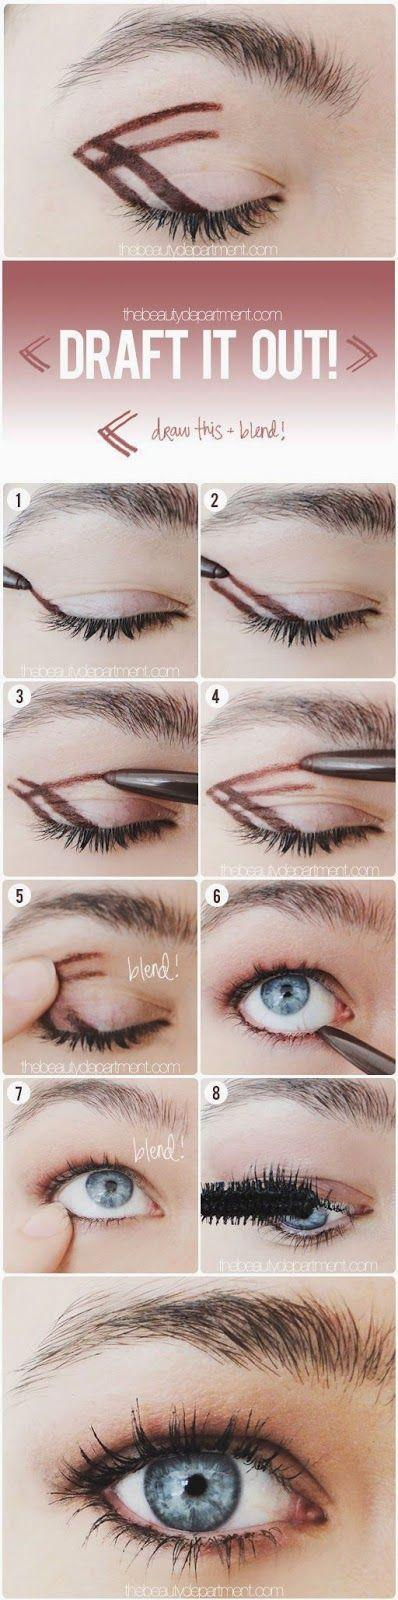 Hochzeit - 41 Life-Saving Beauty Hacks Every Girl Should Have In Her Arsenal